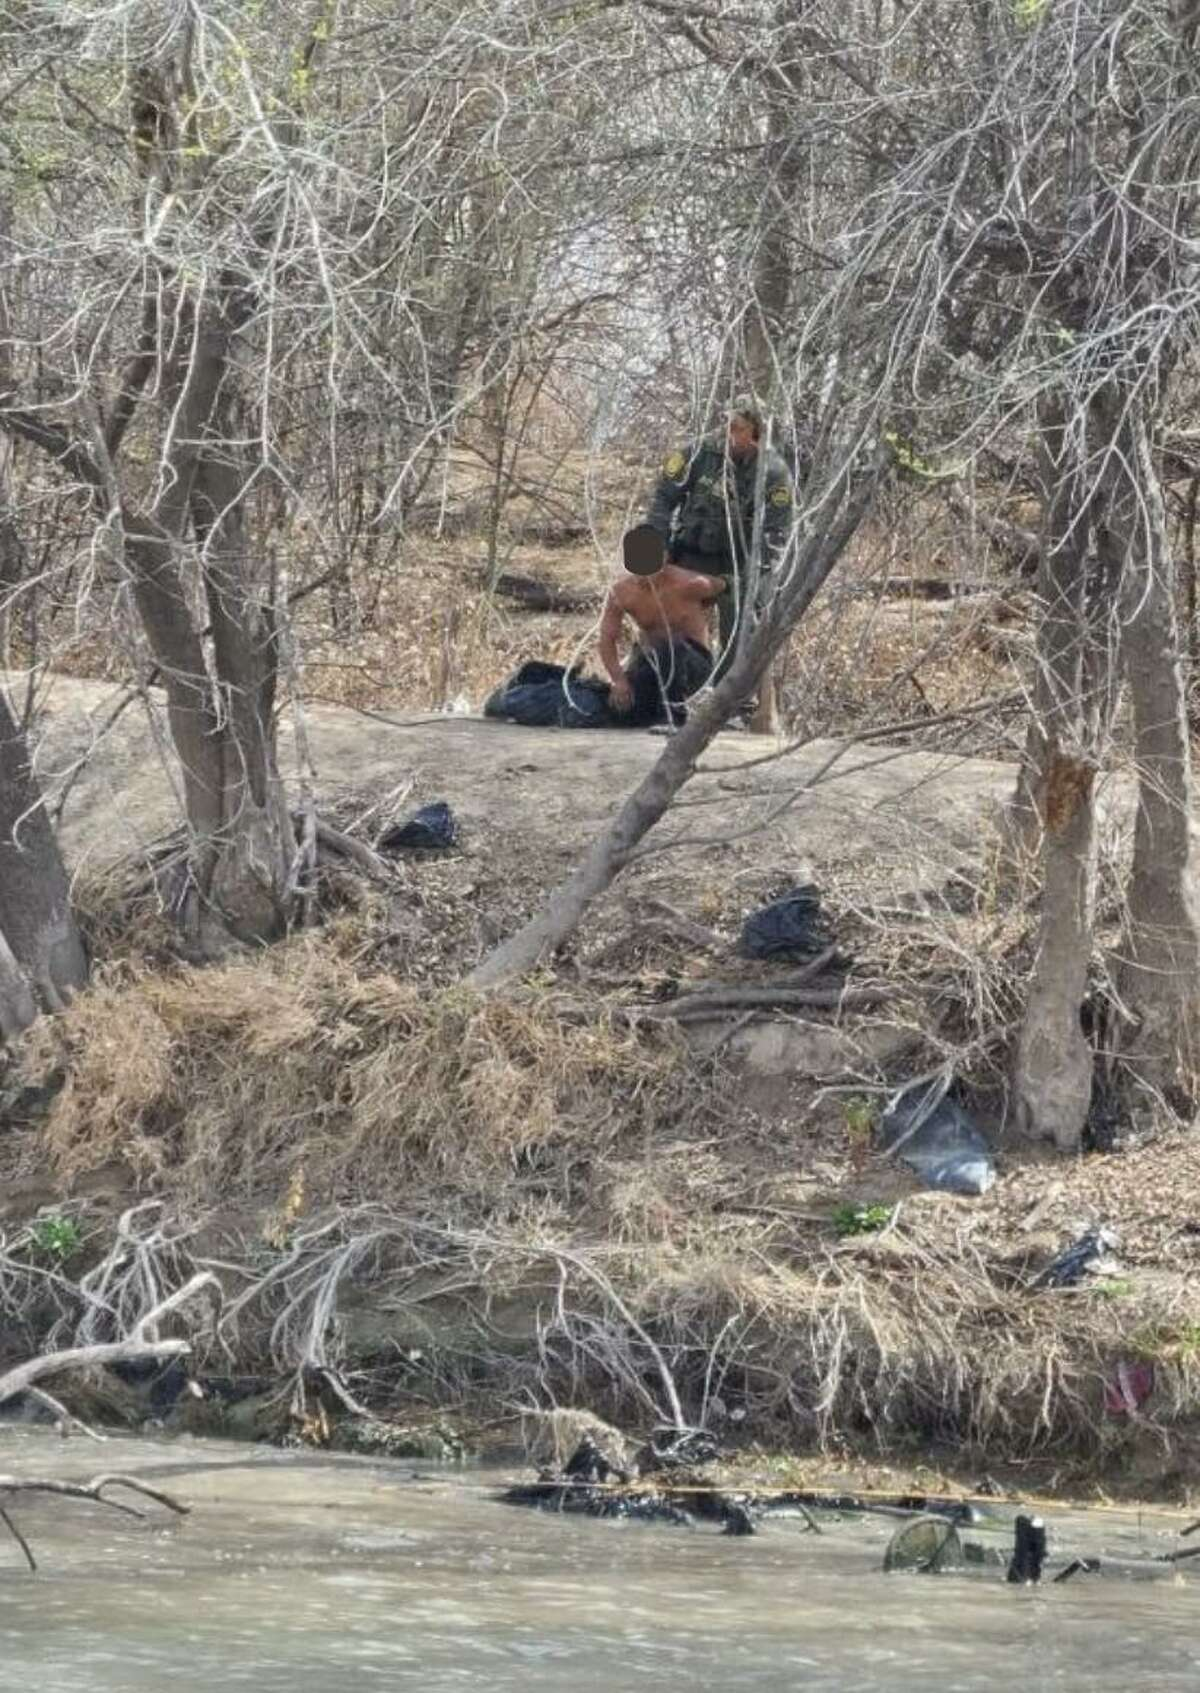 Laredo Sector Border Patrol Marine Unit agents prevented multiple immigrants from crossing the border illegally at the Rio Grande.